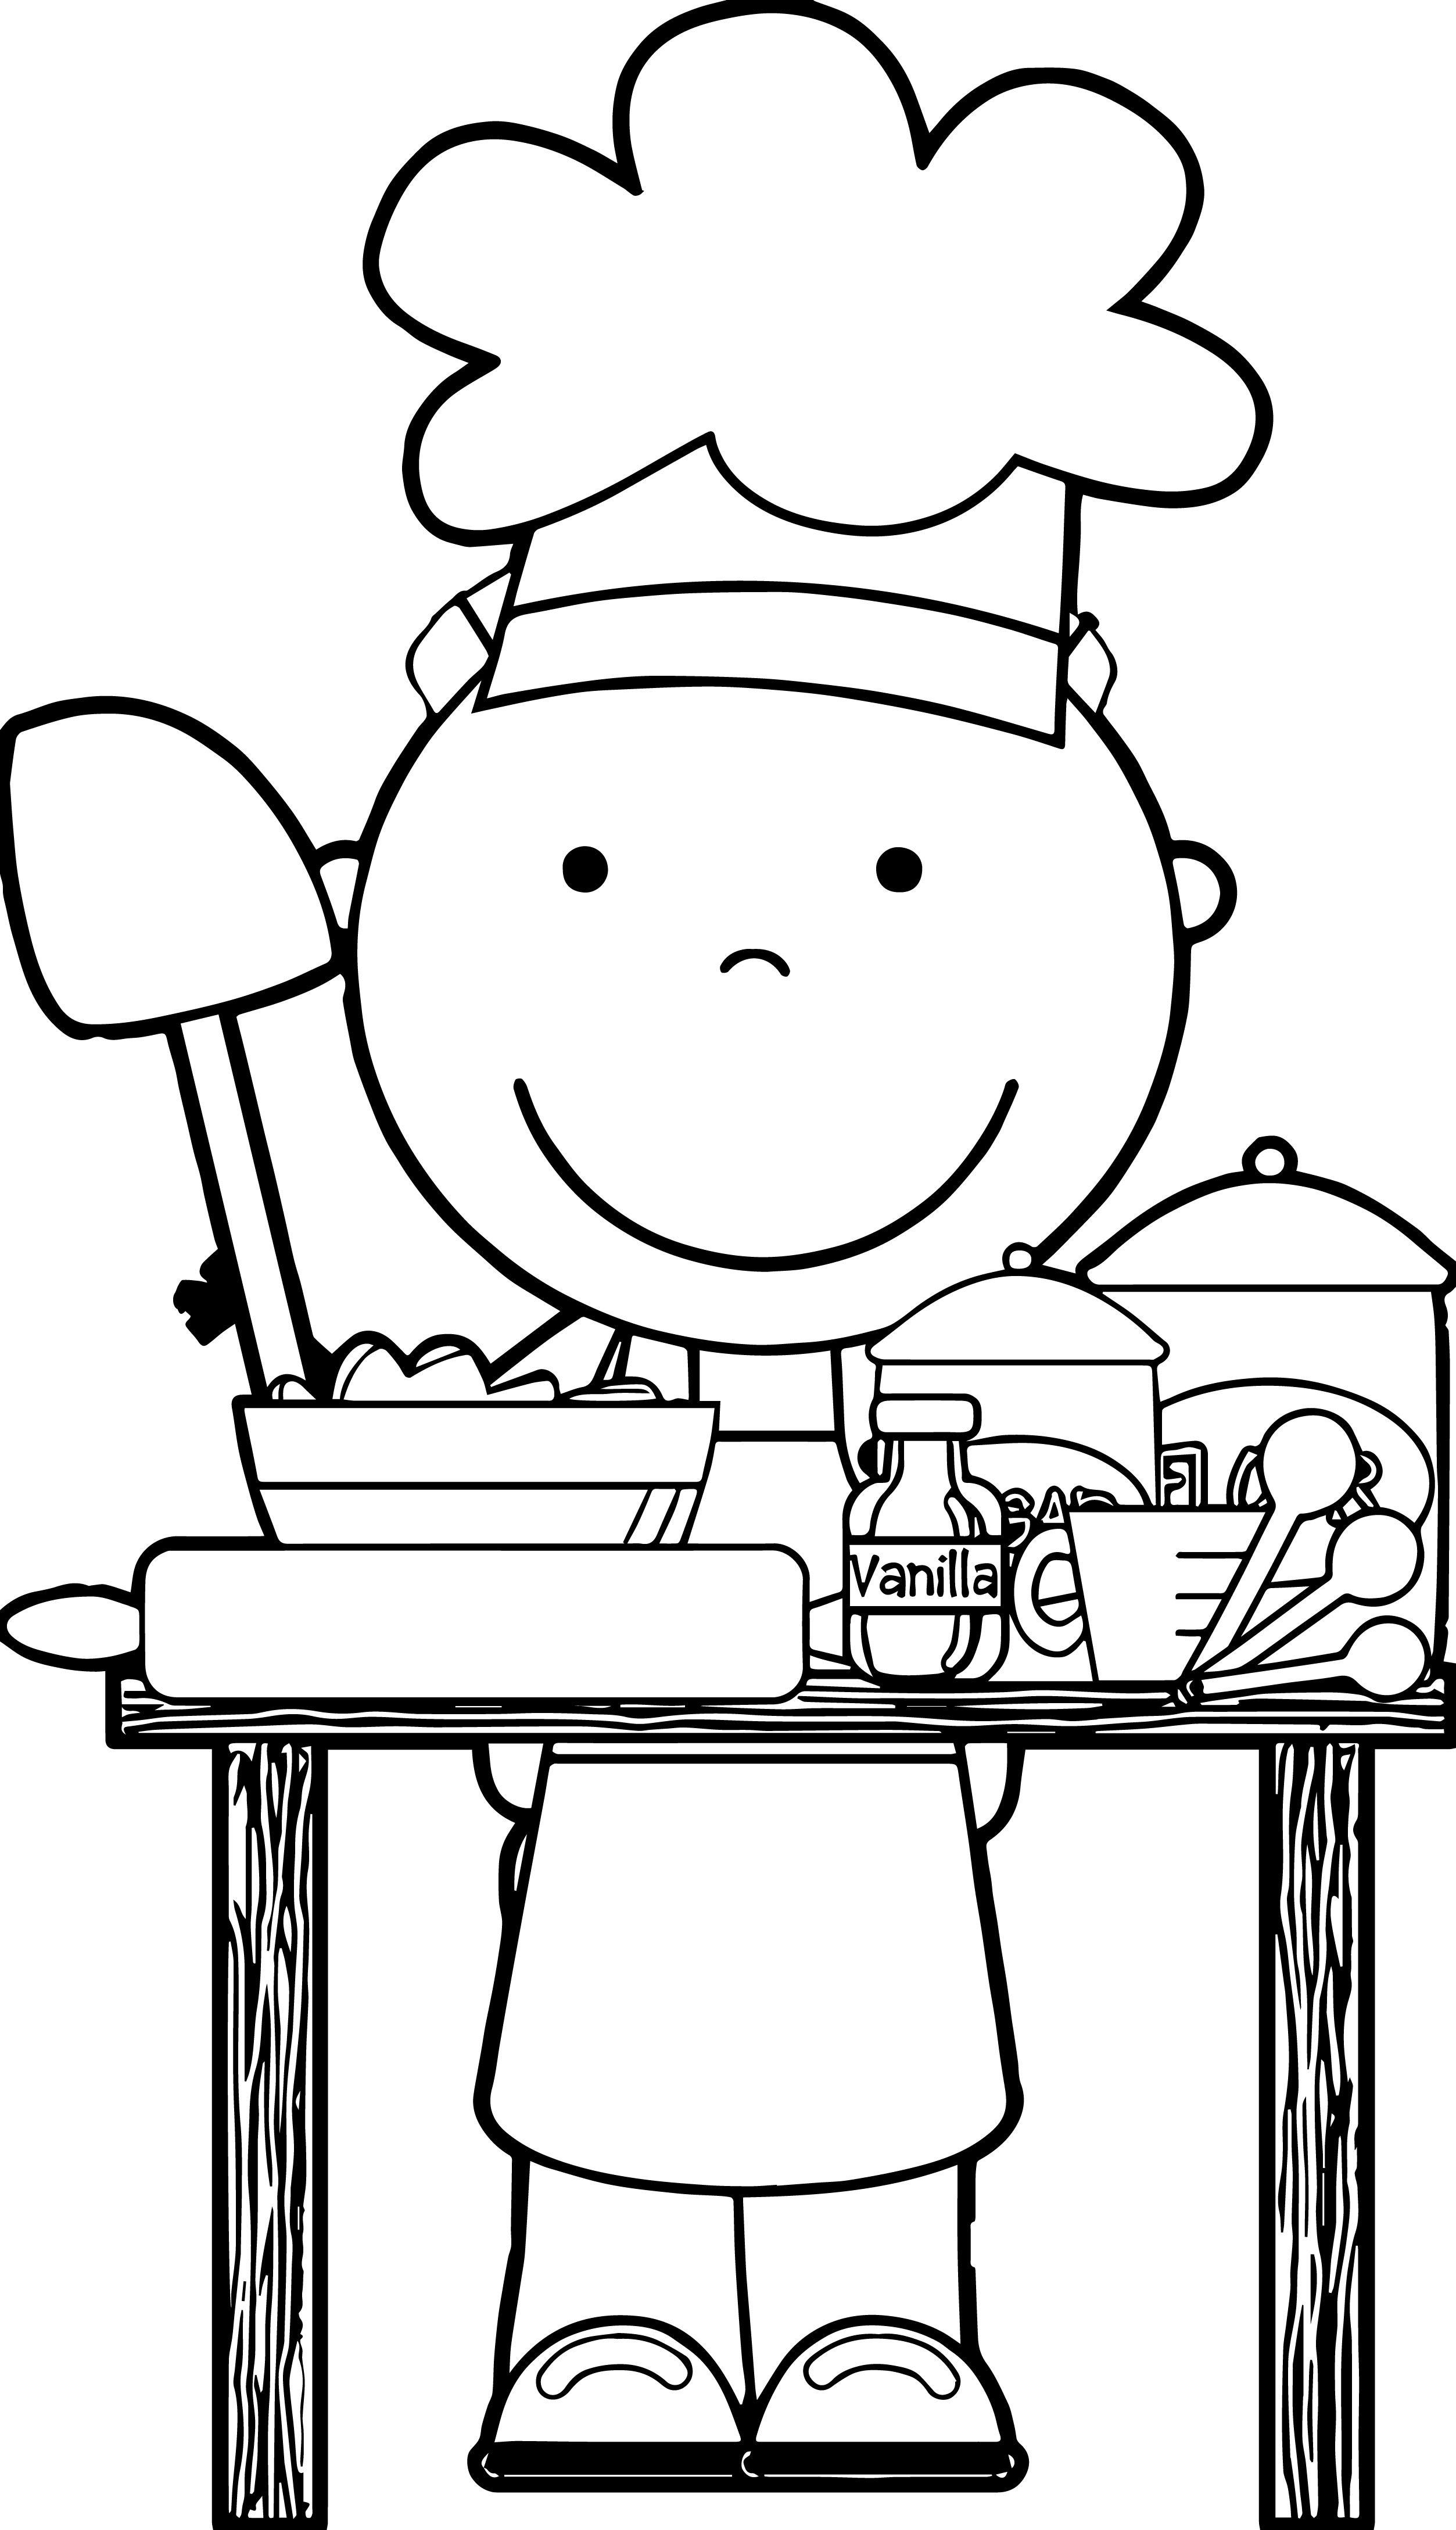 free pie coloring pages for kids | nice Chef Cooking Free Images Kids Coloring Page ...